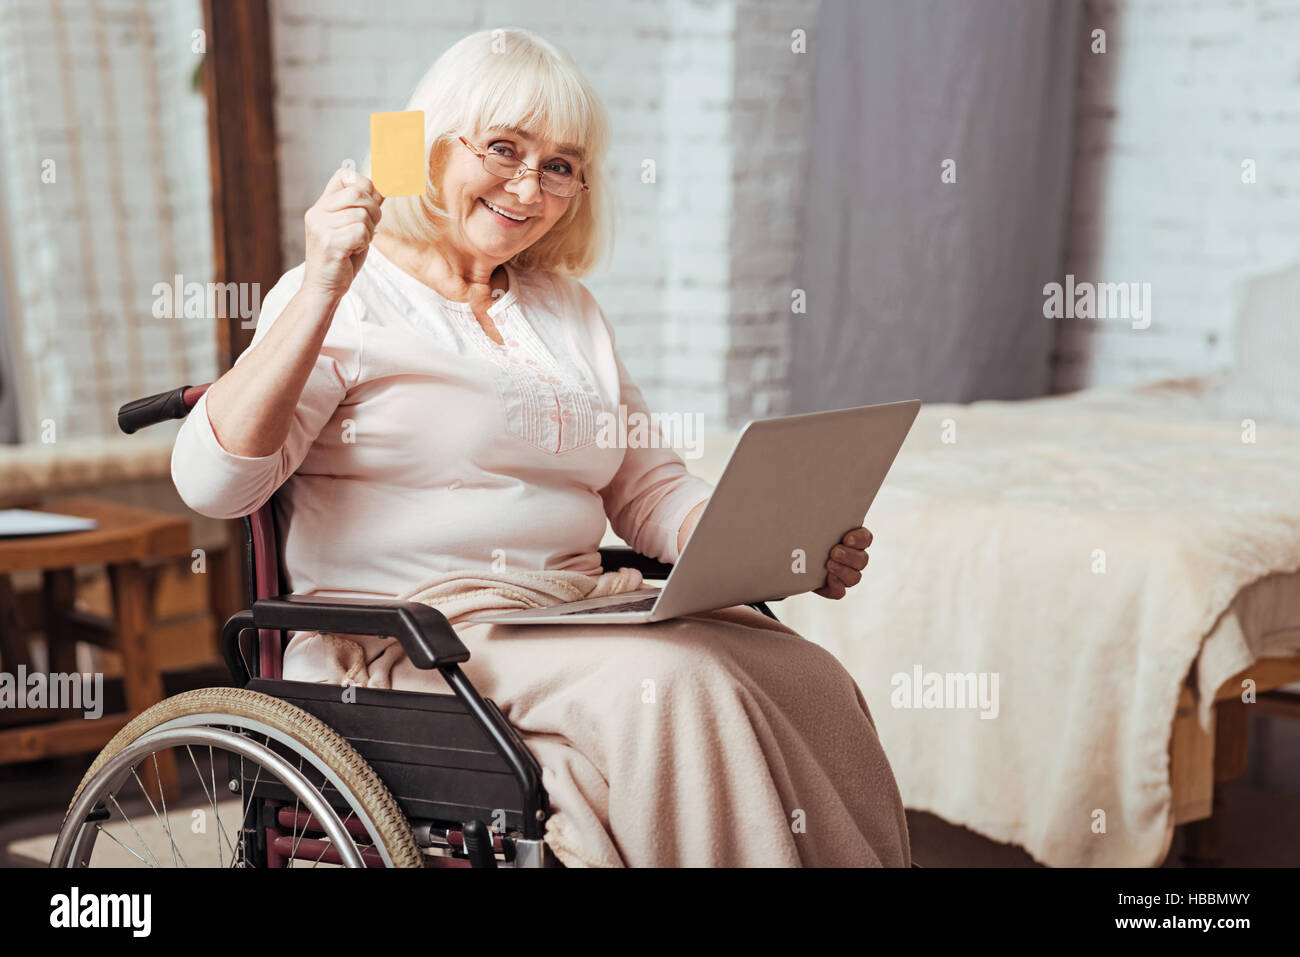 Positive elderly woman using laptop - Stock Image